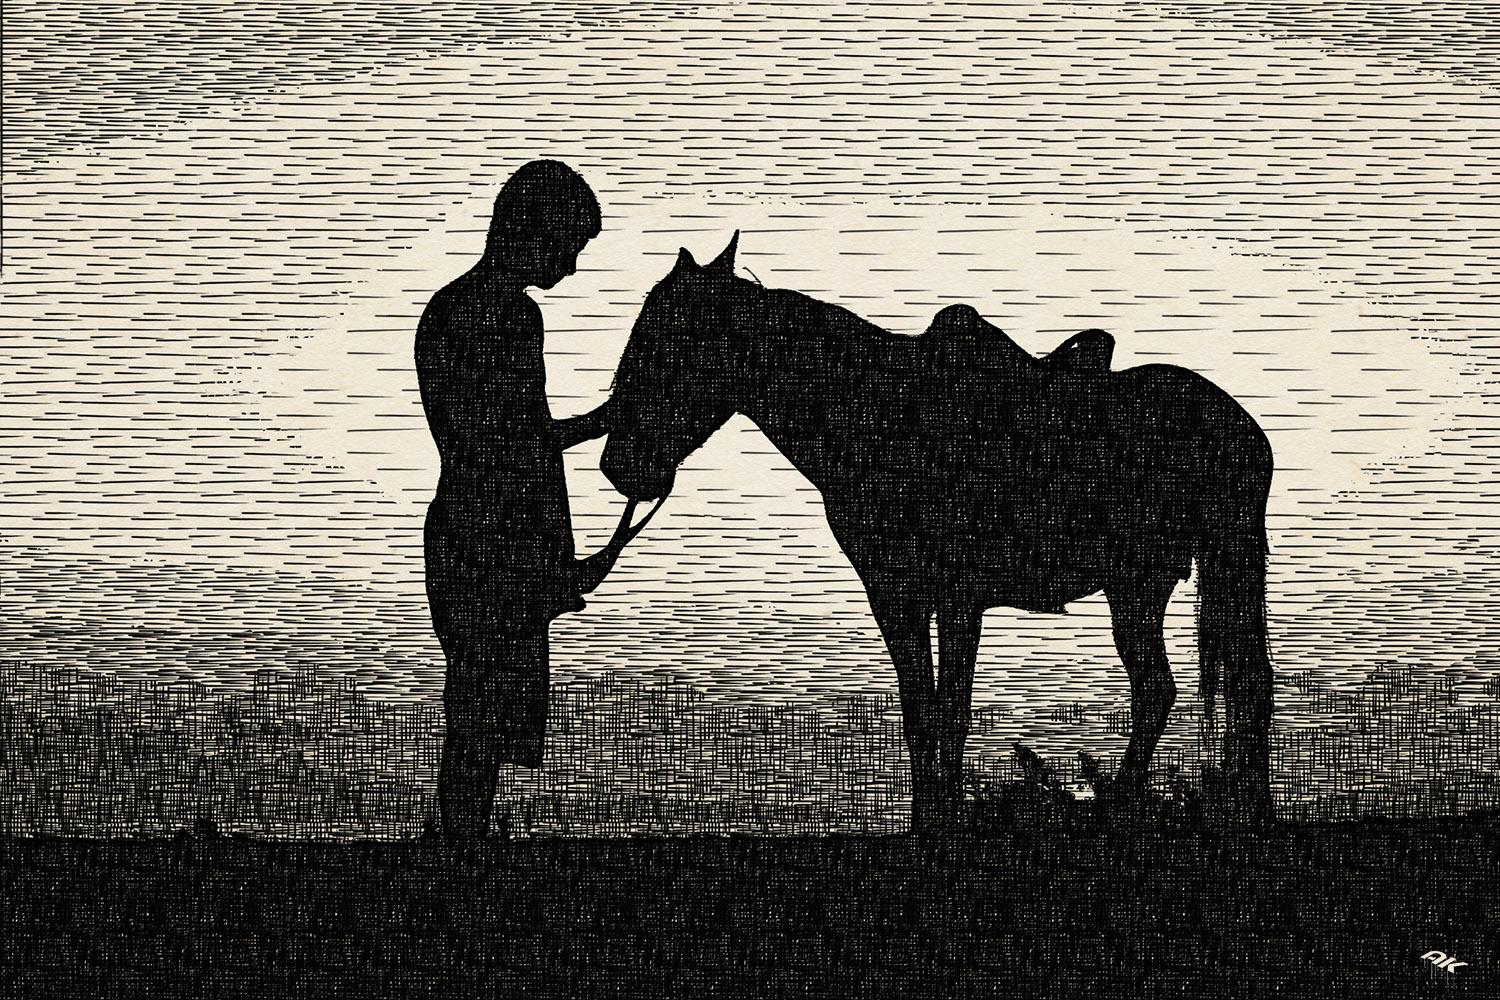 Silhouettes-Engraving-16-copyright-andrew-knutt